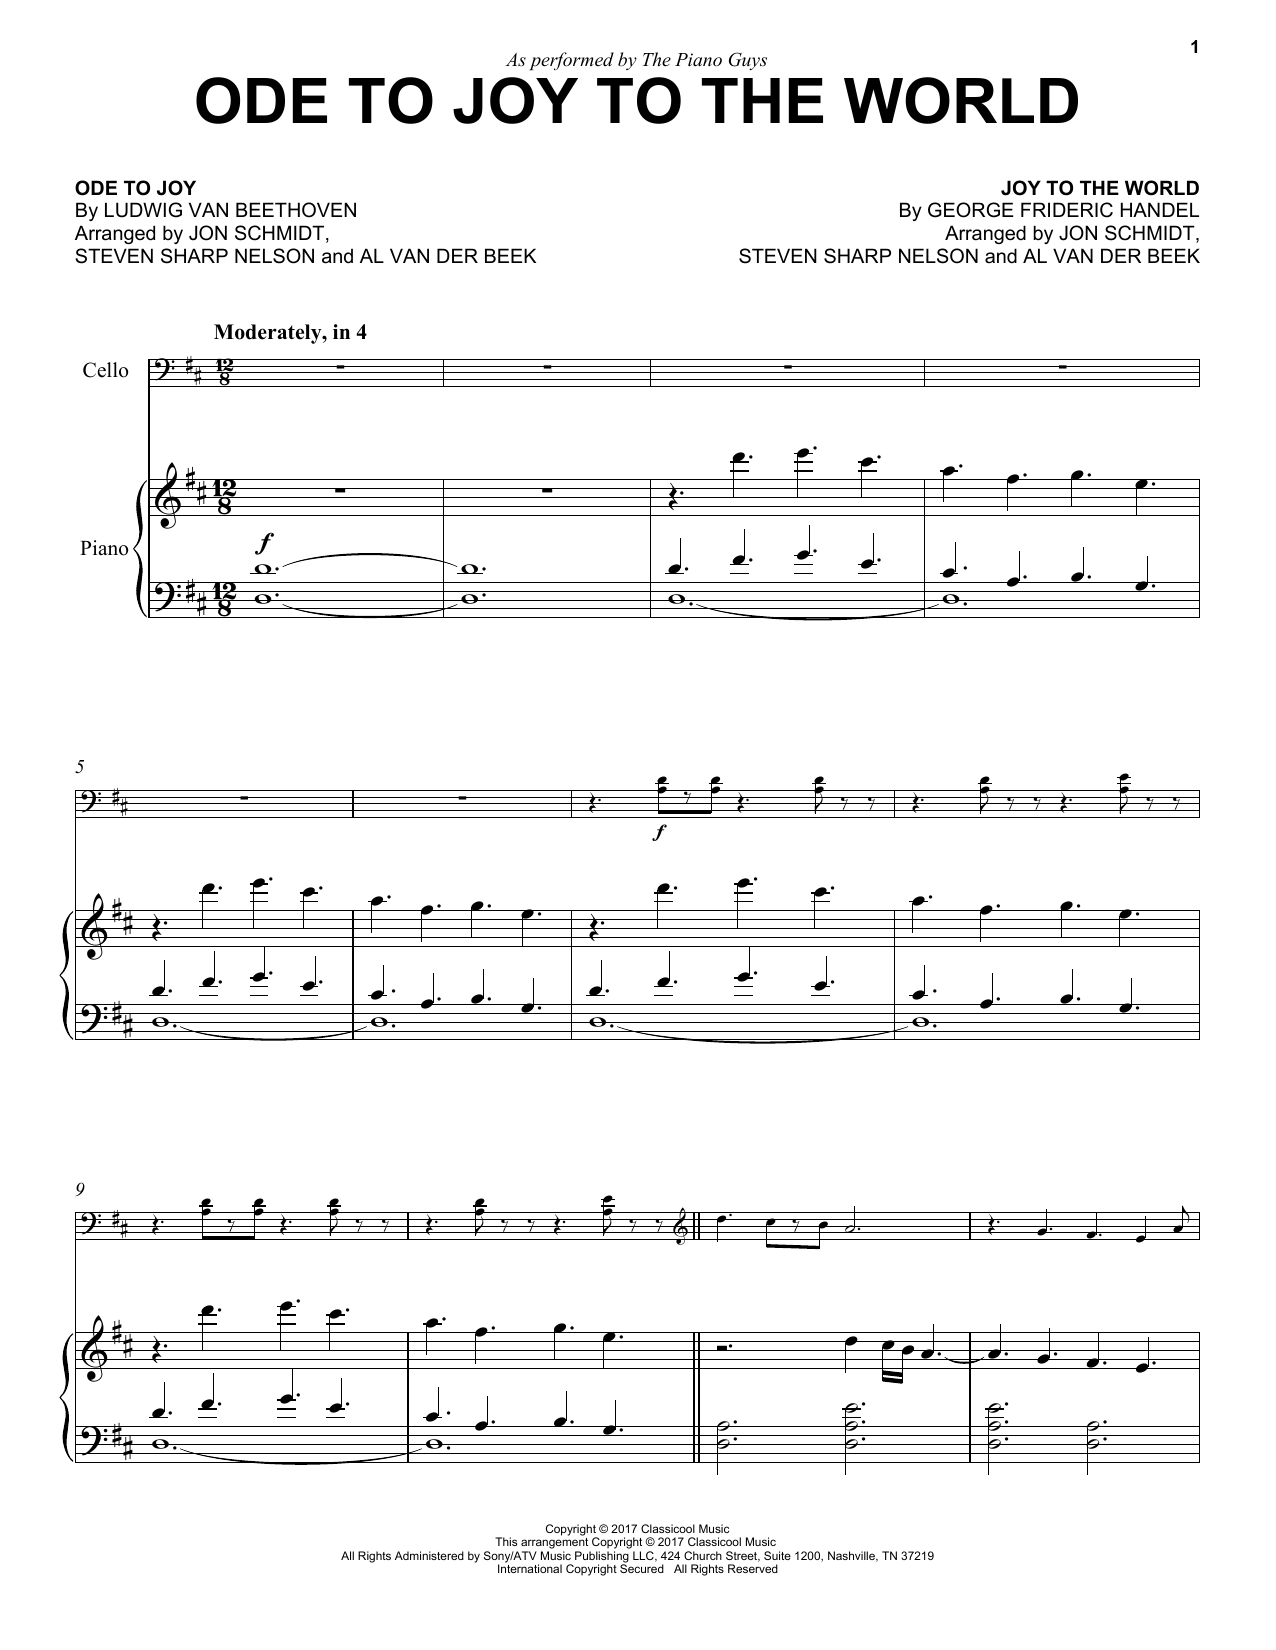 The Piano Guys Ode To Joy To The World Sheet Music Notes Chords